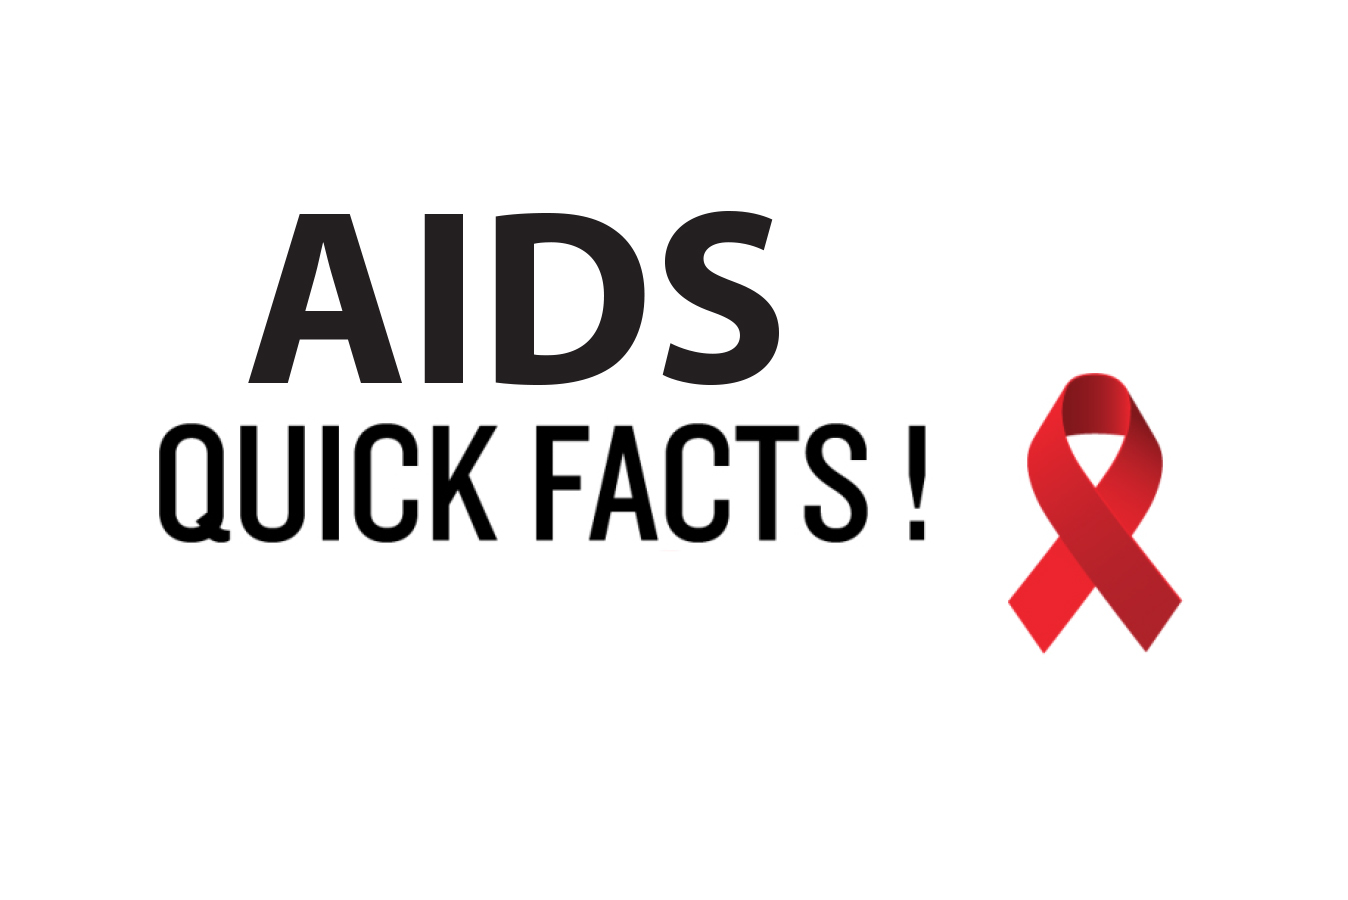 AIDS Quick Facts